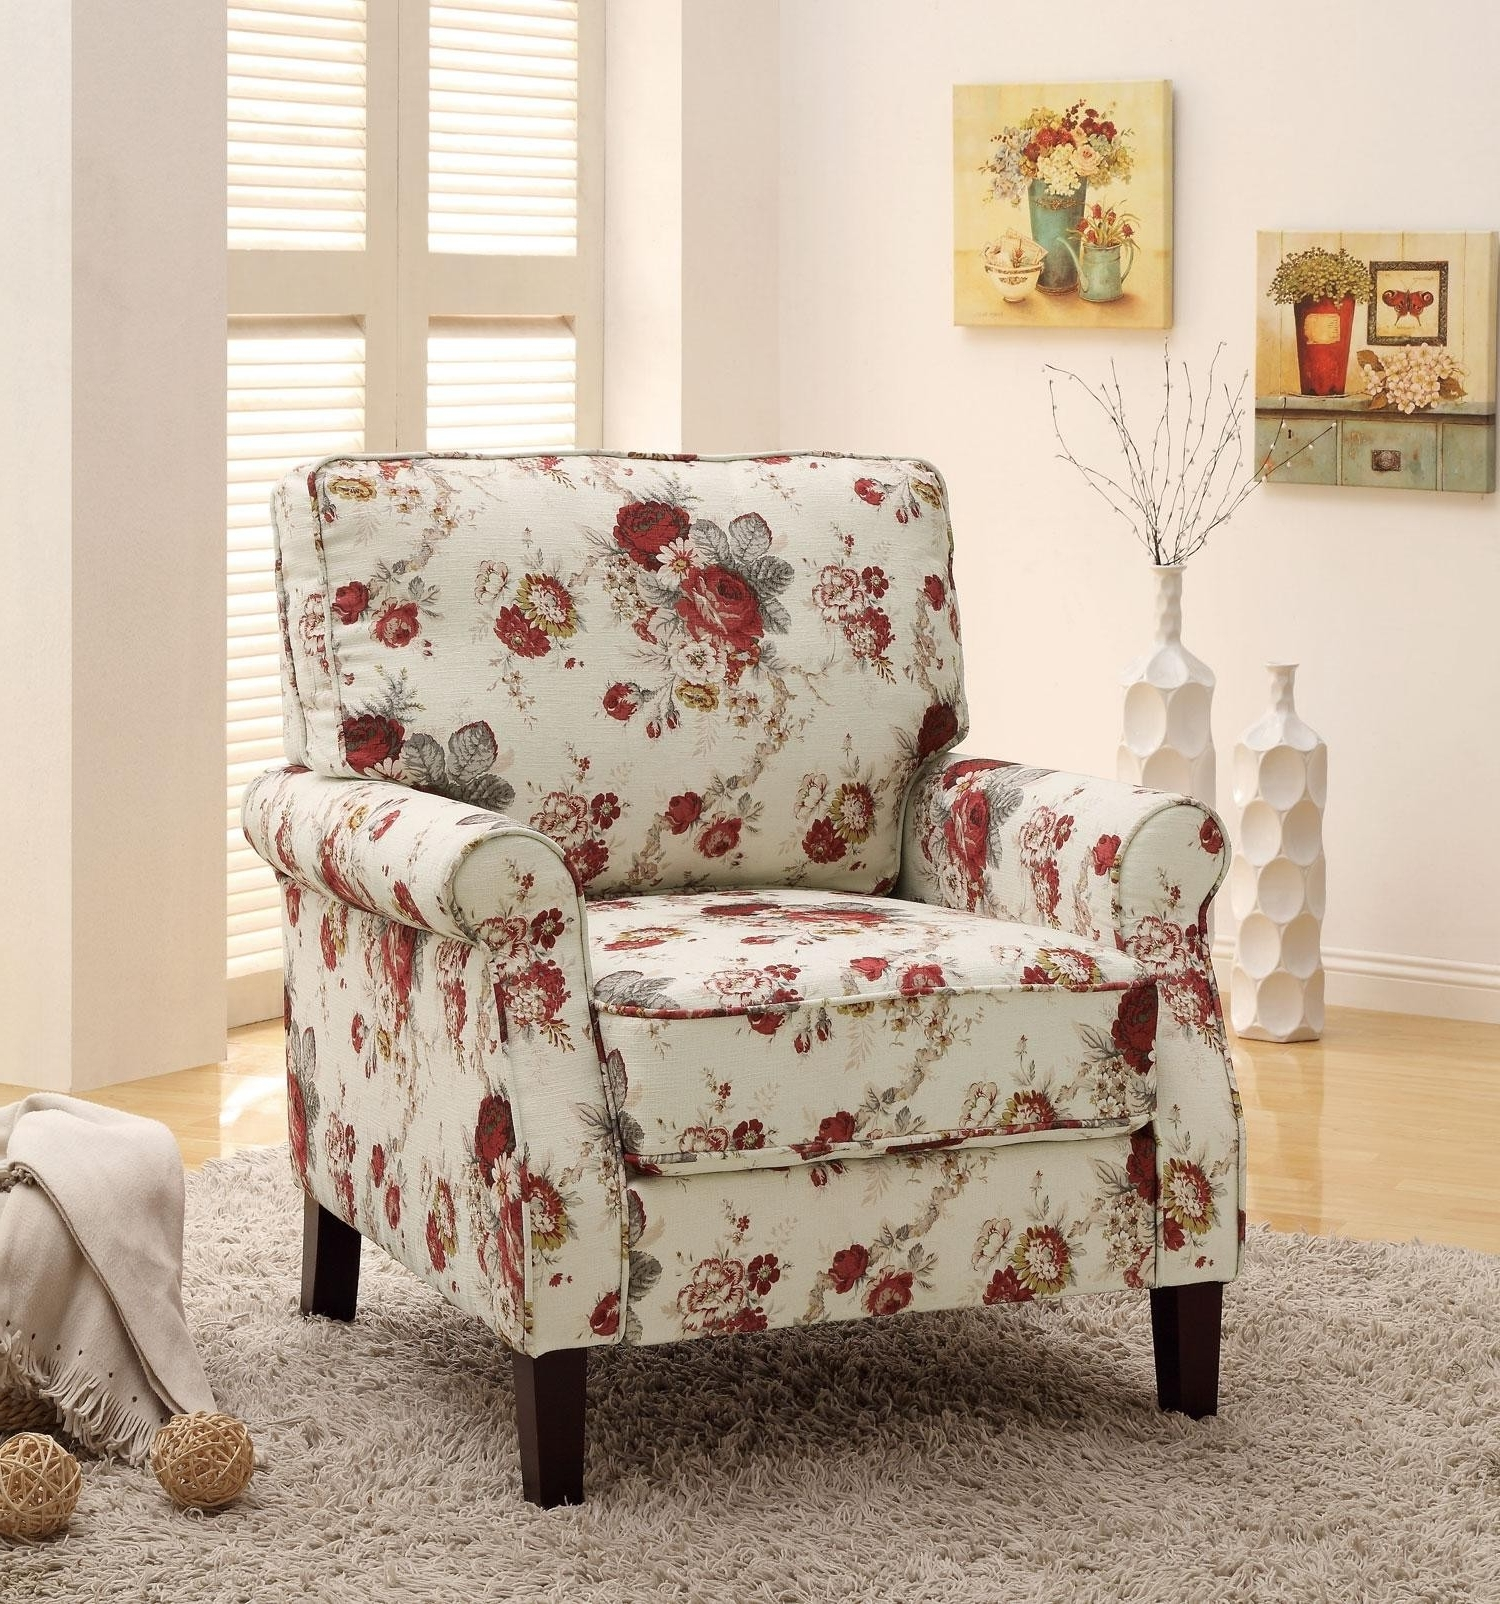 Preferred Floral Sofas And Chairs Inside The Application Of Enchanting Upholstered Chairs For Your Rooms (View 15 of 20)